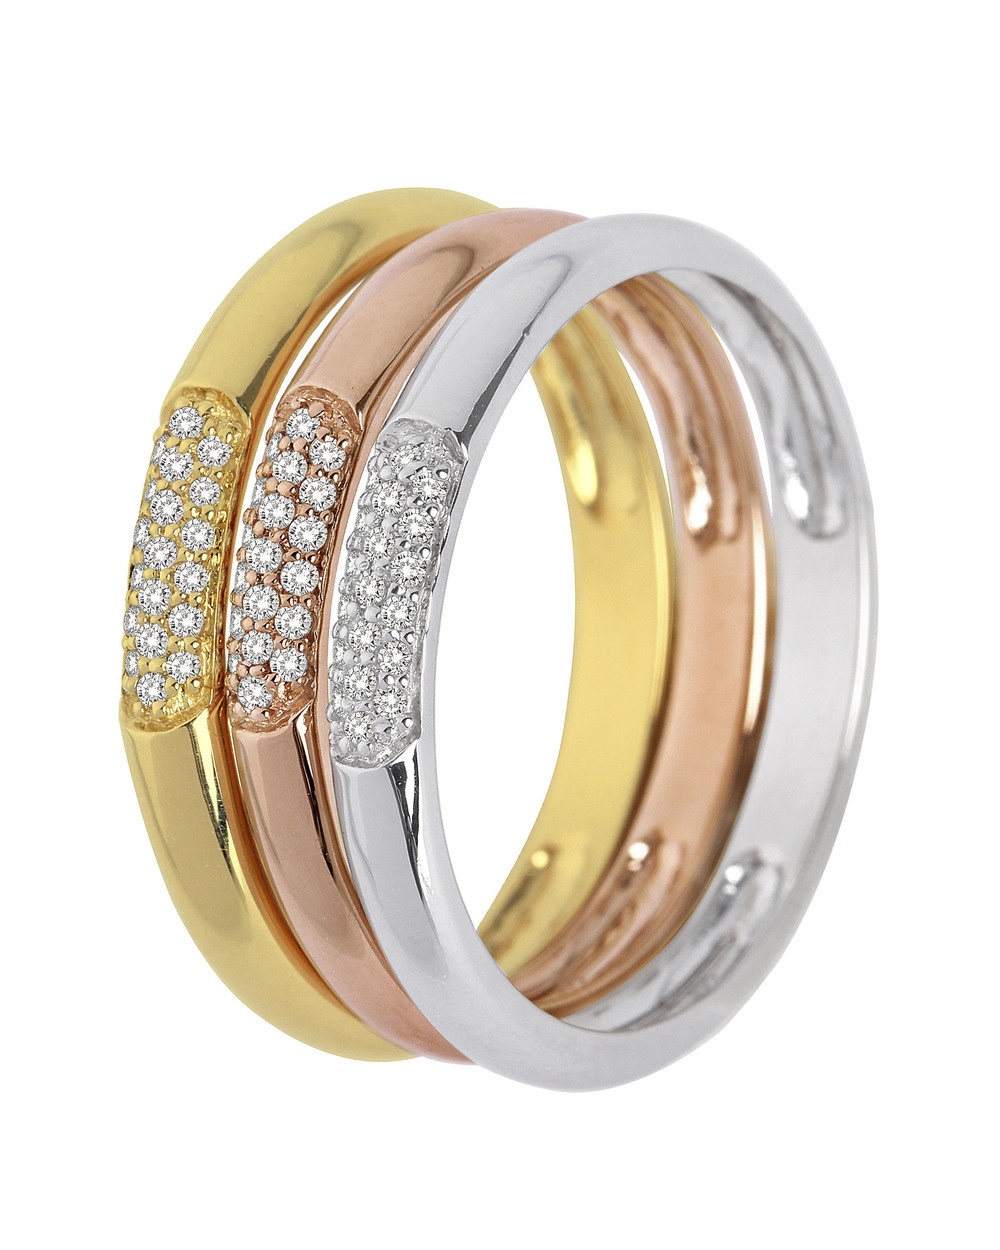 VALERIA, Ring aus 375 Tricolor Gold mit 0 18 Karat Diamanten 54